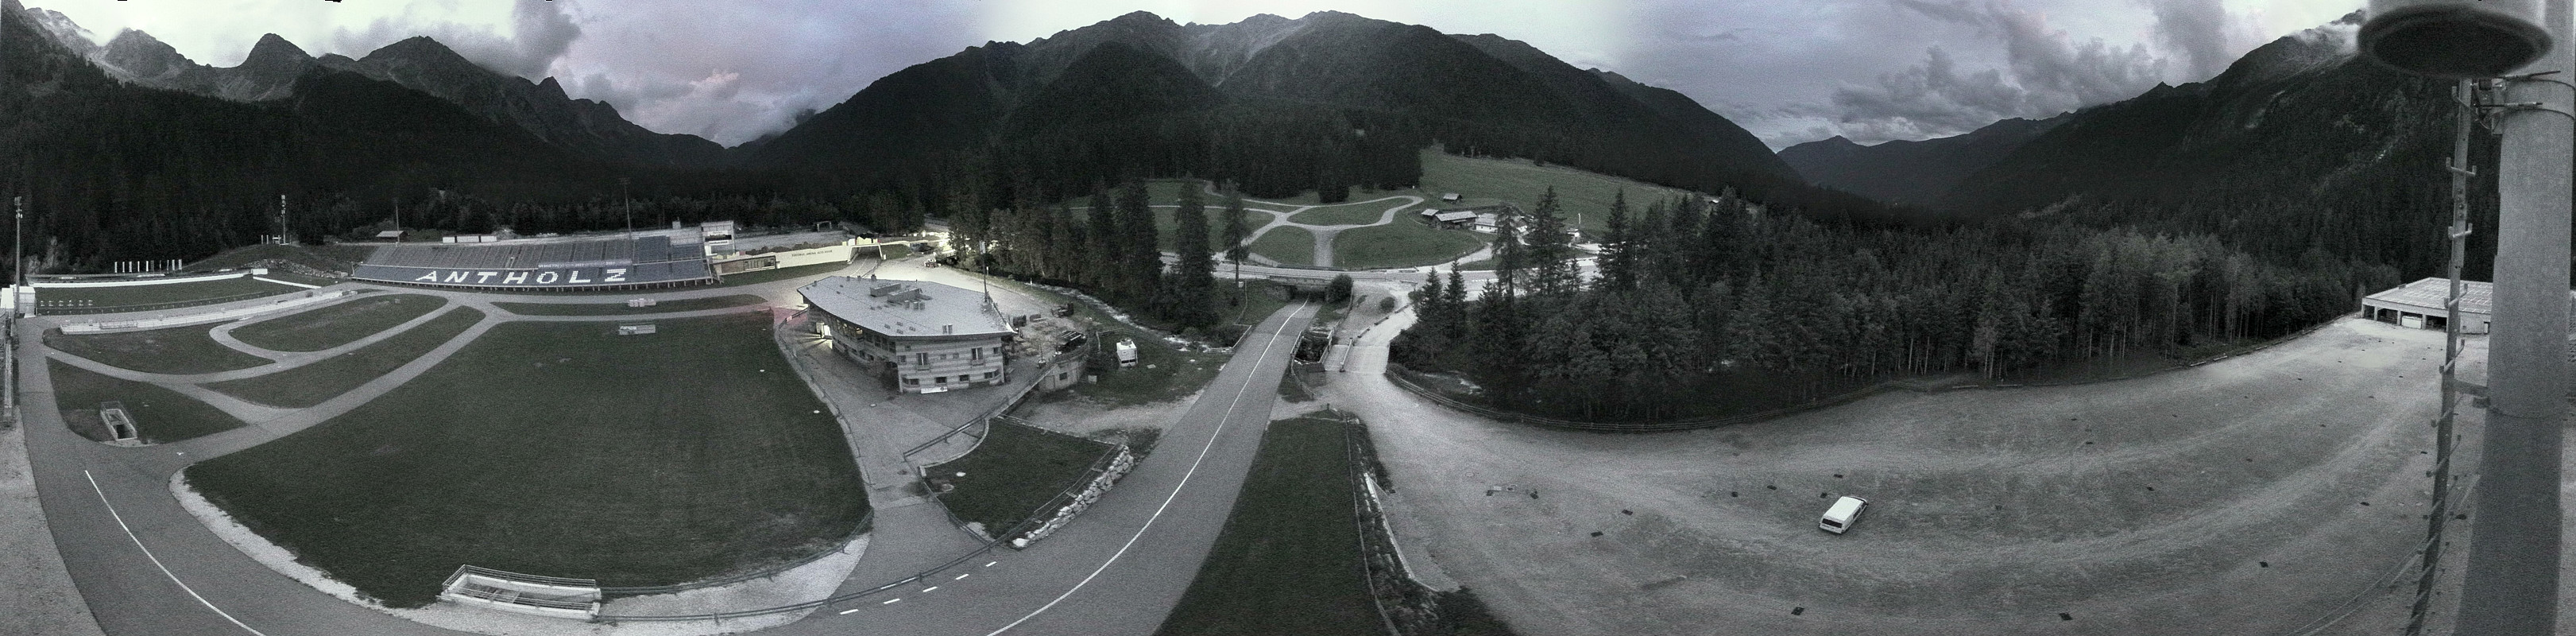 Antholzertal Biathlonzentrum